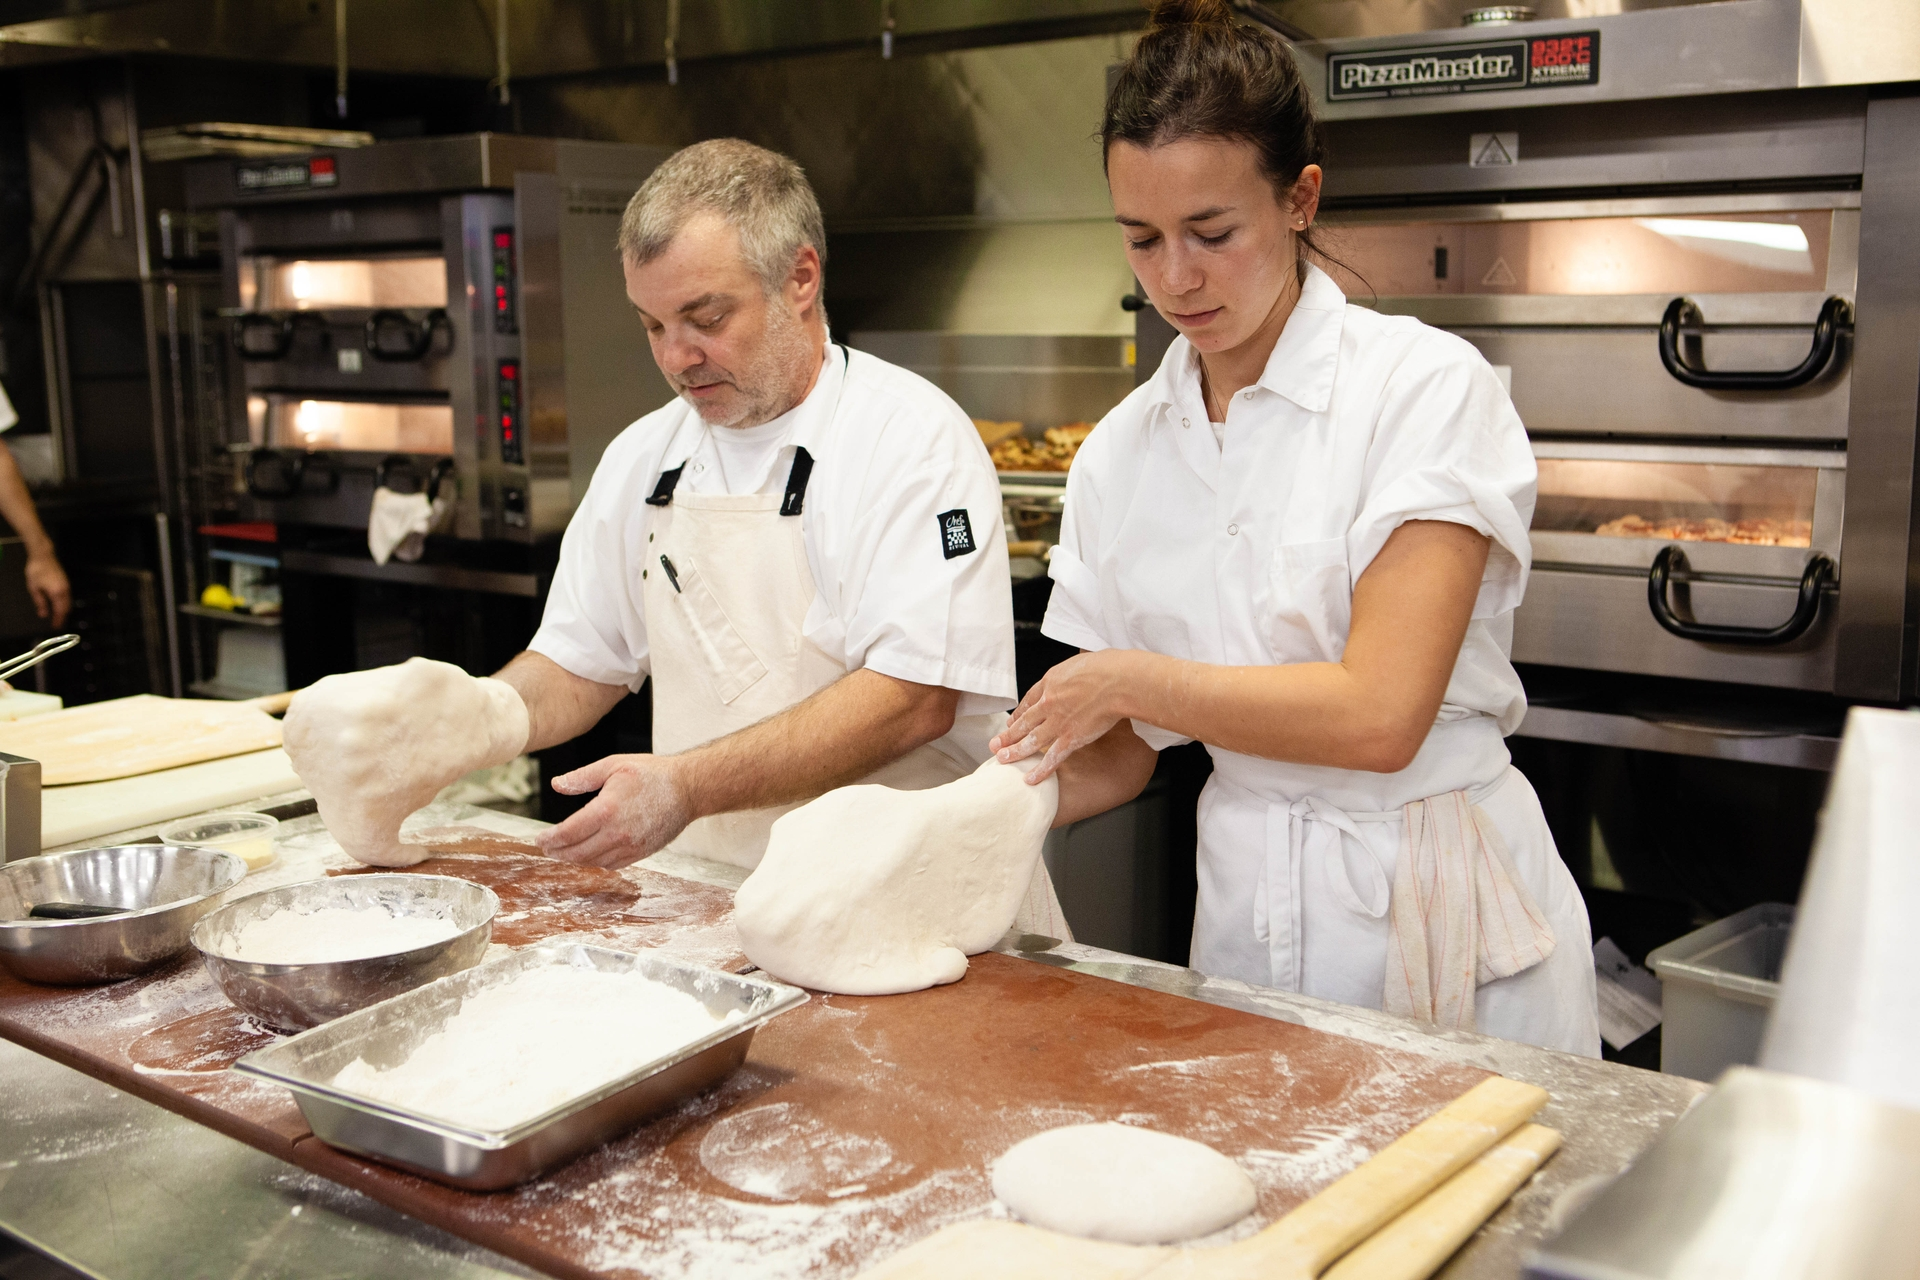 Pizza chefs Noel Brohner and Ines Barlerin prepare pizza dough at SCE's Foodservice Technology Center reopening.